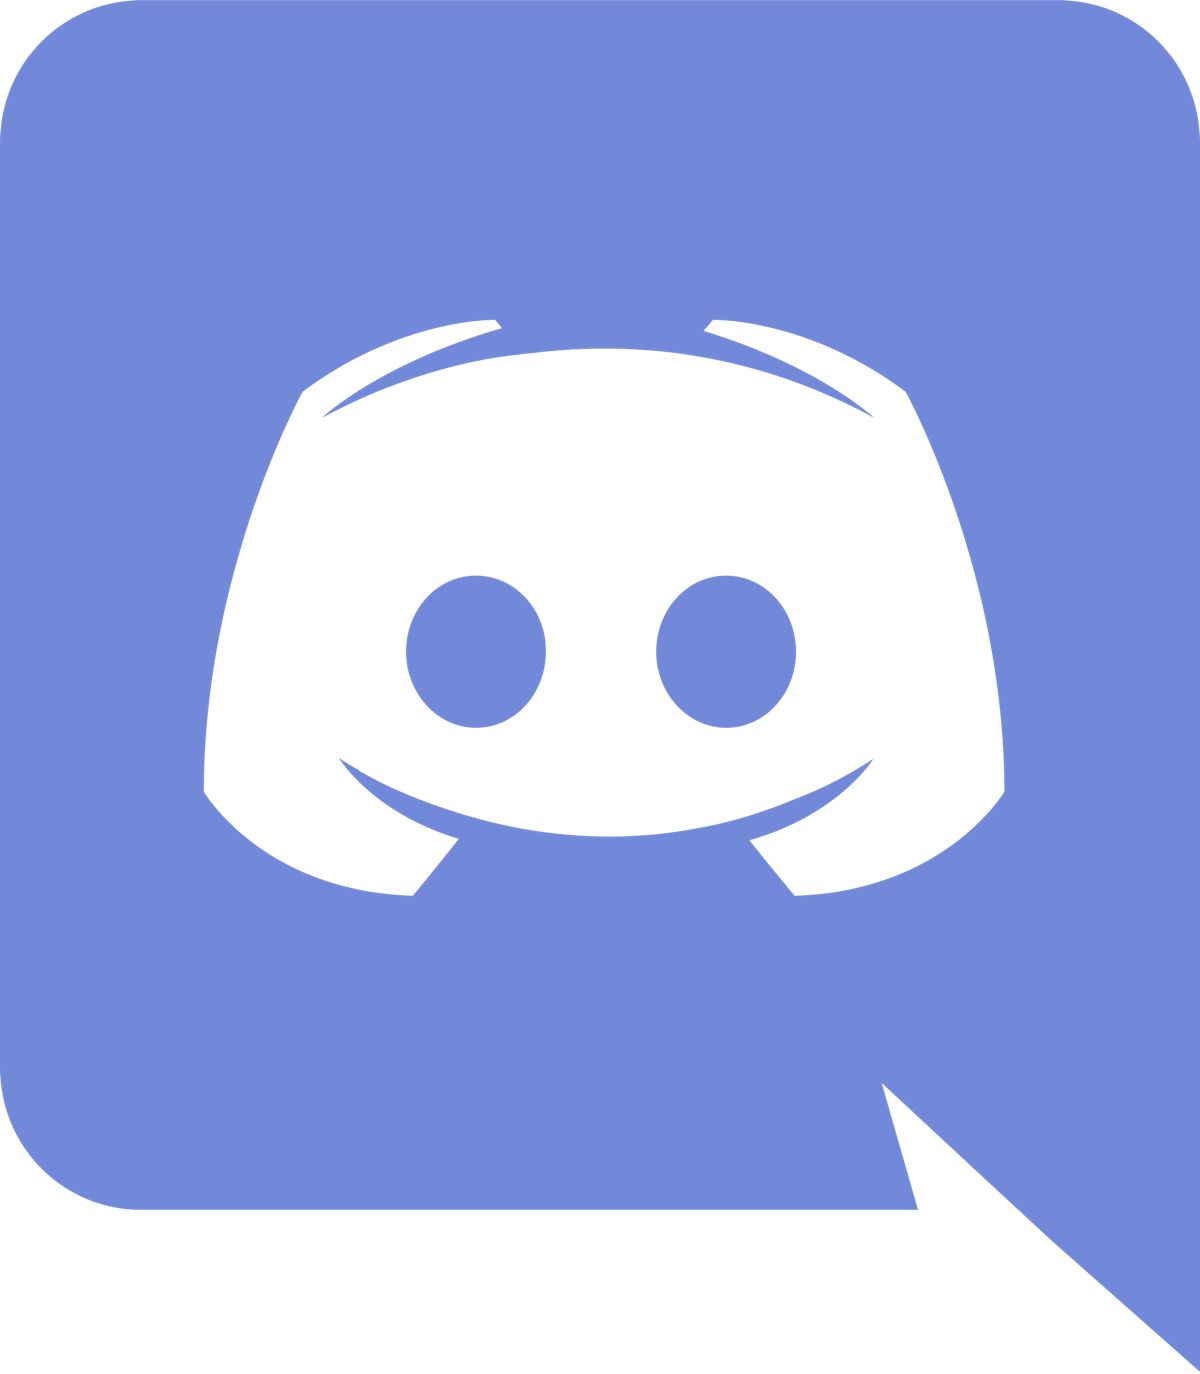 Discord – Download Discord App for PC, Mac, Android, iOS & Linux